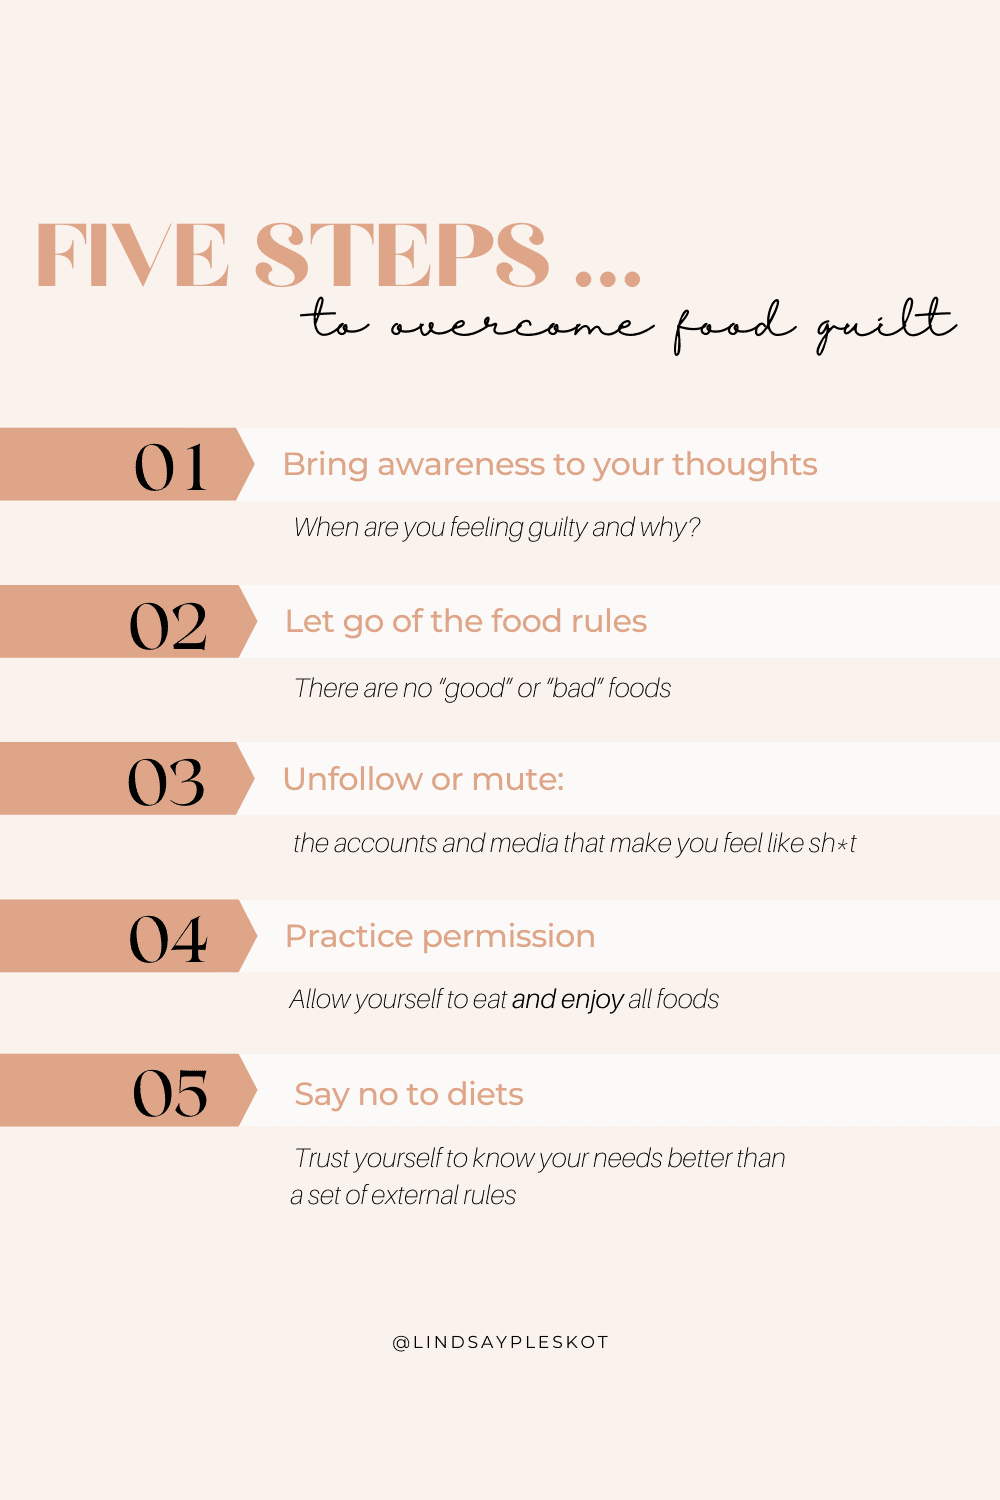 a light pink background with beige and black writing reads Five steps to overcome food guilt with steps listed including bring awareness to your thoughts, let go of food rules, unfollow or mute media and social media accounts that make you feel bad, practice permission to eat all foods, and say no to diets!